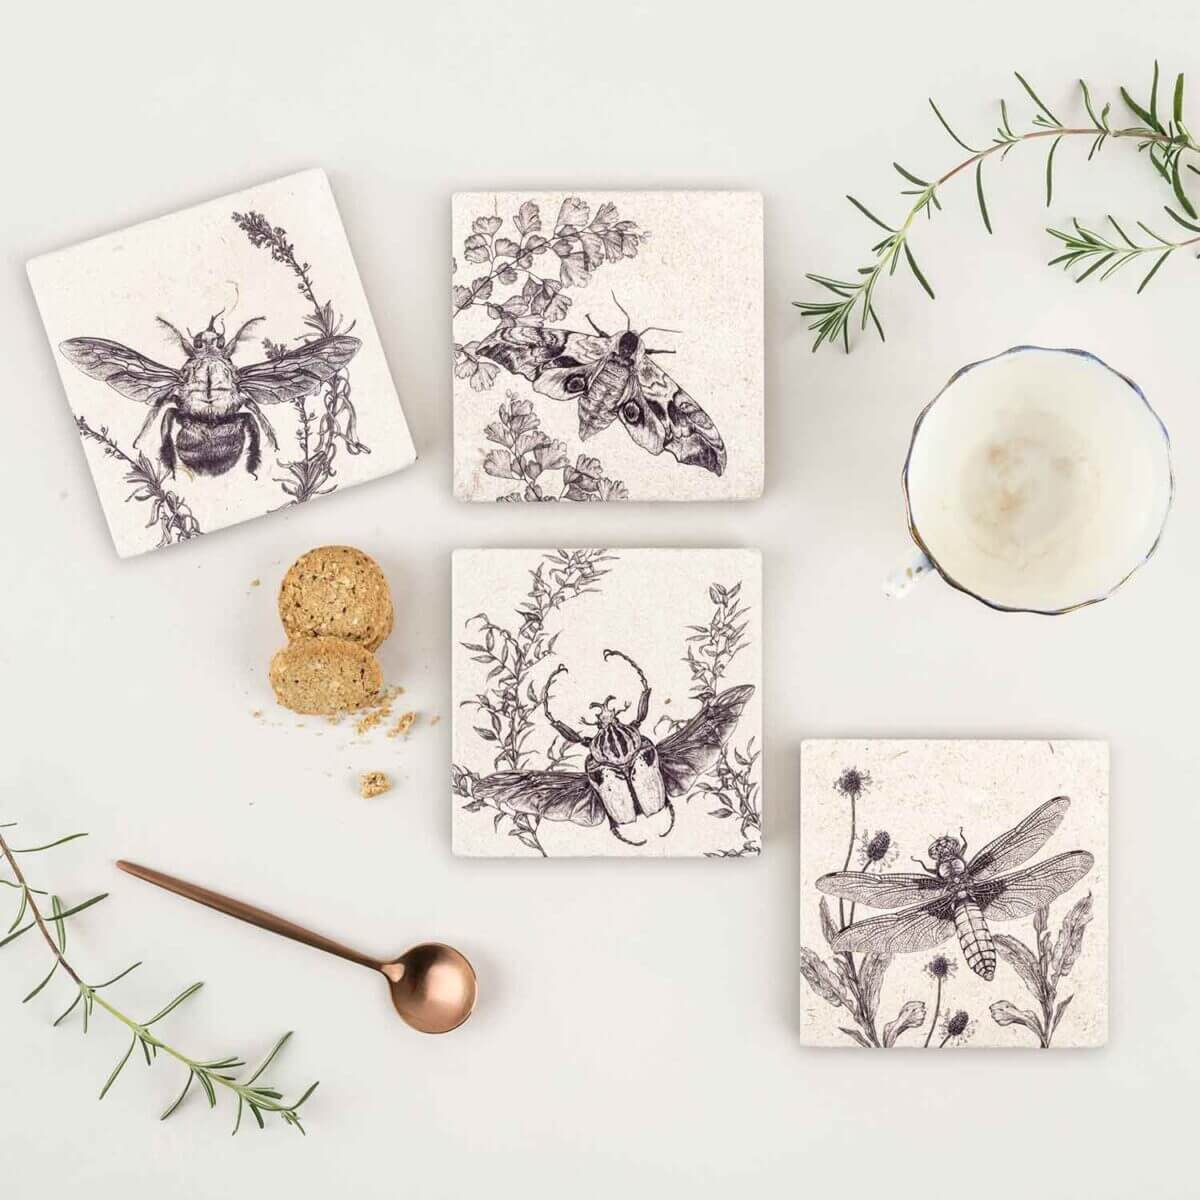 Insect-Coasters-Limited-Edition-Set-Sky-Siouki